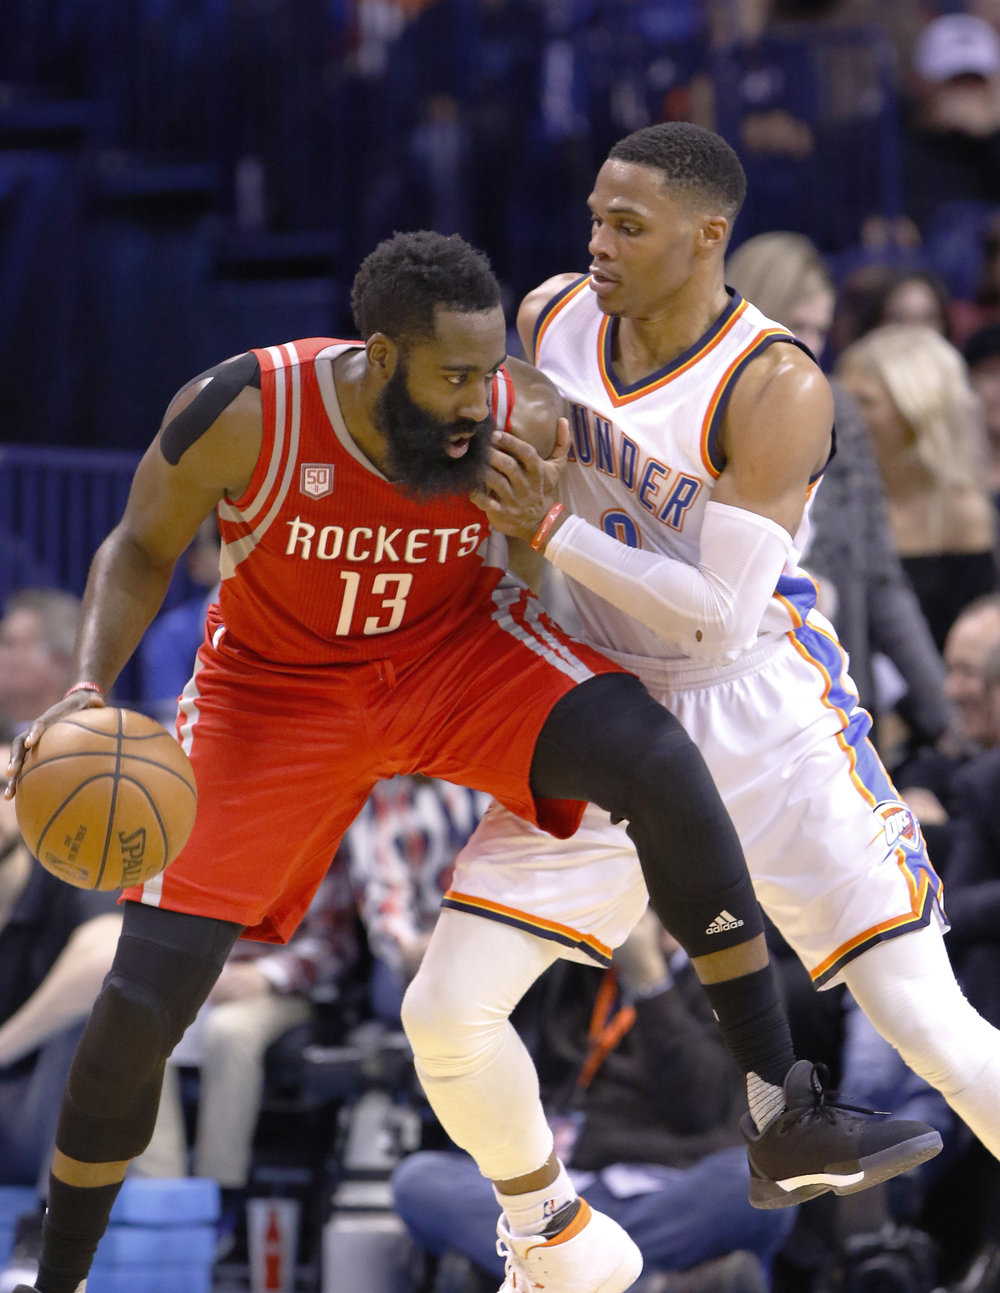 In this Dec. 9, 2016, file photo, Houston Rockets guard James Harden (13) is defended by Oklahoma City Thunder guard Russell Westbrook (0) on a drive to the basket during the second half of an NBA basketball game in Oklahoma City. The playoffs start Saturday, with a series matching MVP candidates Russell Westbrook and James Harden the highlight of the first round. (Alonzo Adams/AP)